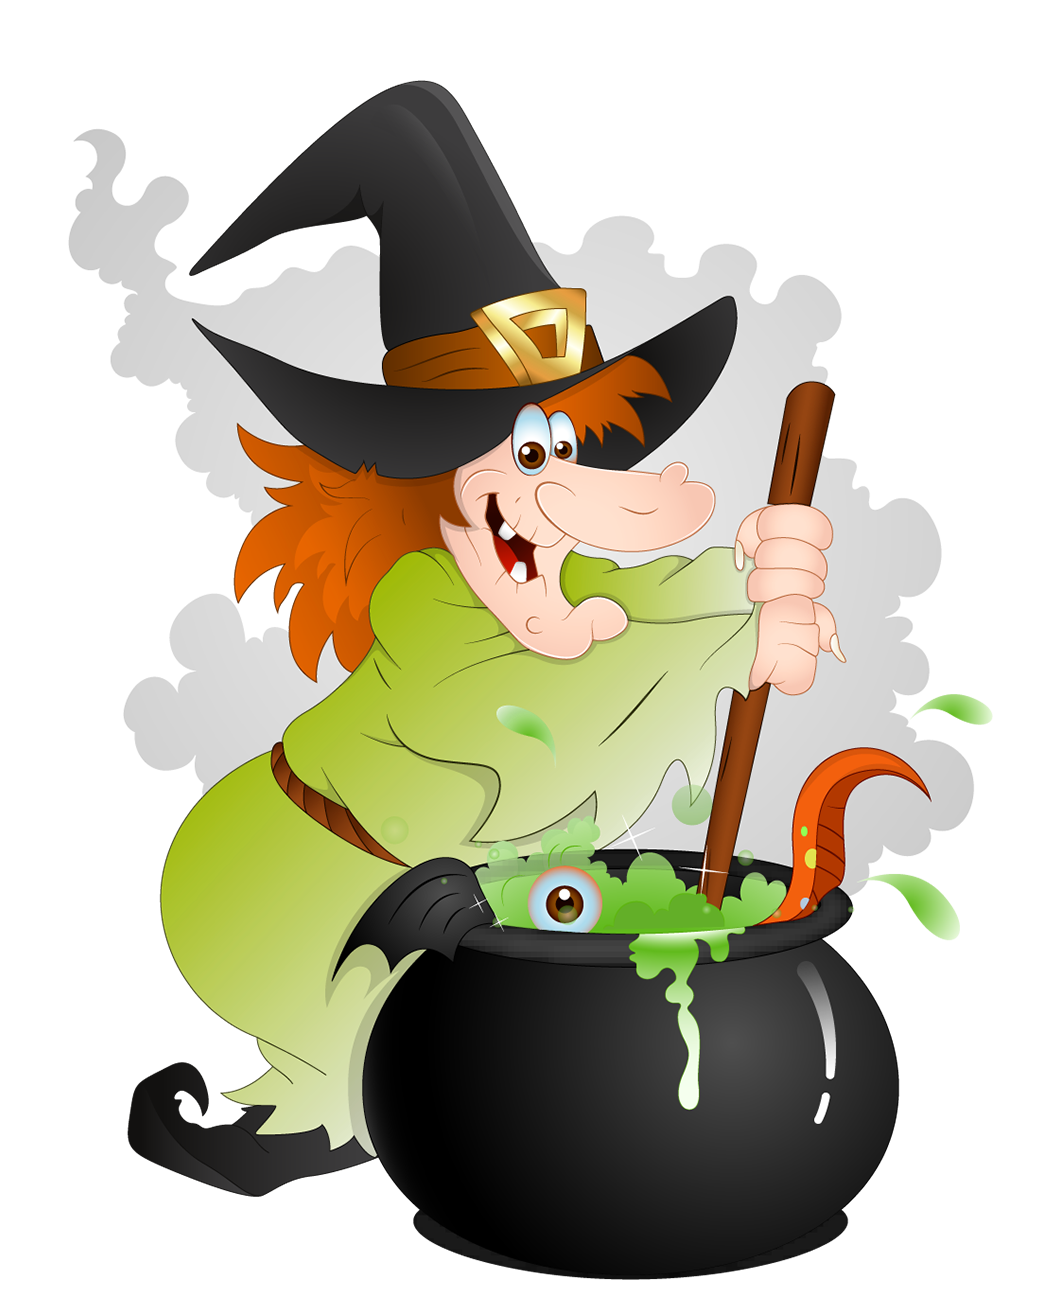 Witch stirring pot clipart graphic black and white download Free Witch\'s Cauldron Cliparts, Download Free Clip Art, Free ... graphic black and white download